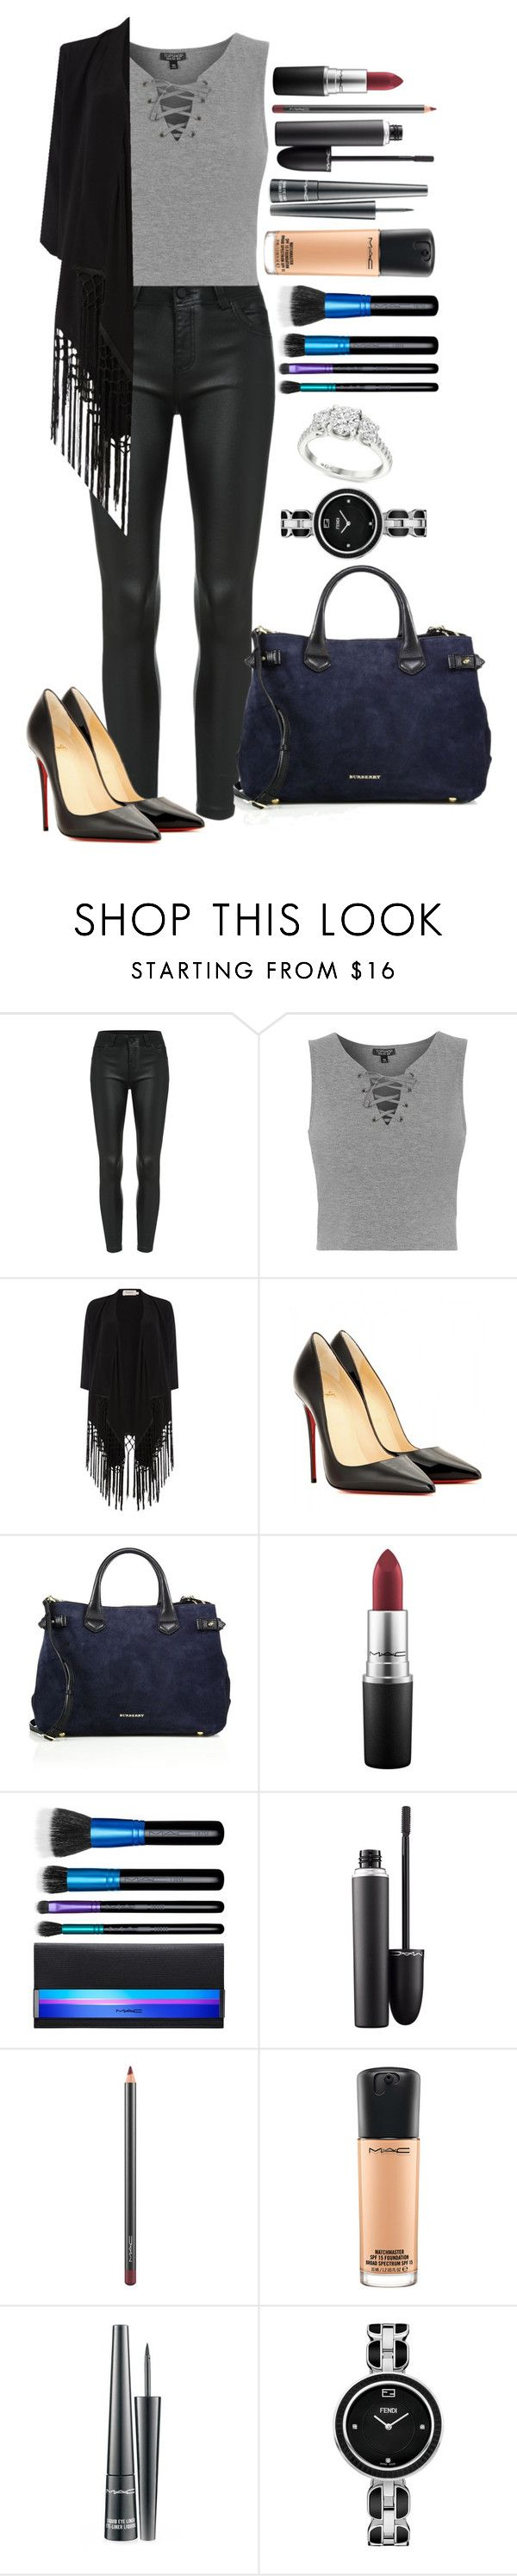 """Untitled #1258"" by fabianarveloc on Polyvore featuring Topshop, Soaked in Luxury, Christian Louboutin, Burberry, MAC Cosmetics and Fendi"